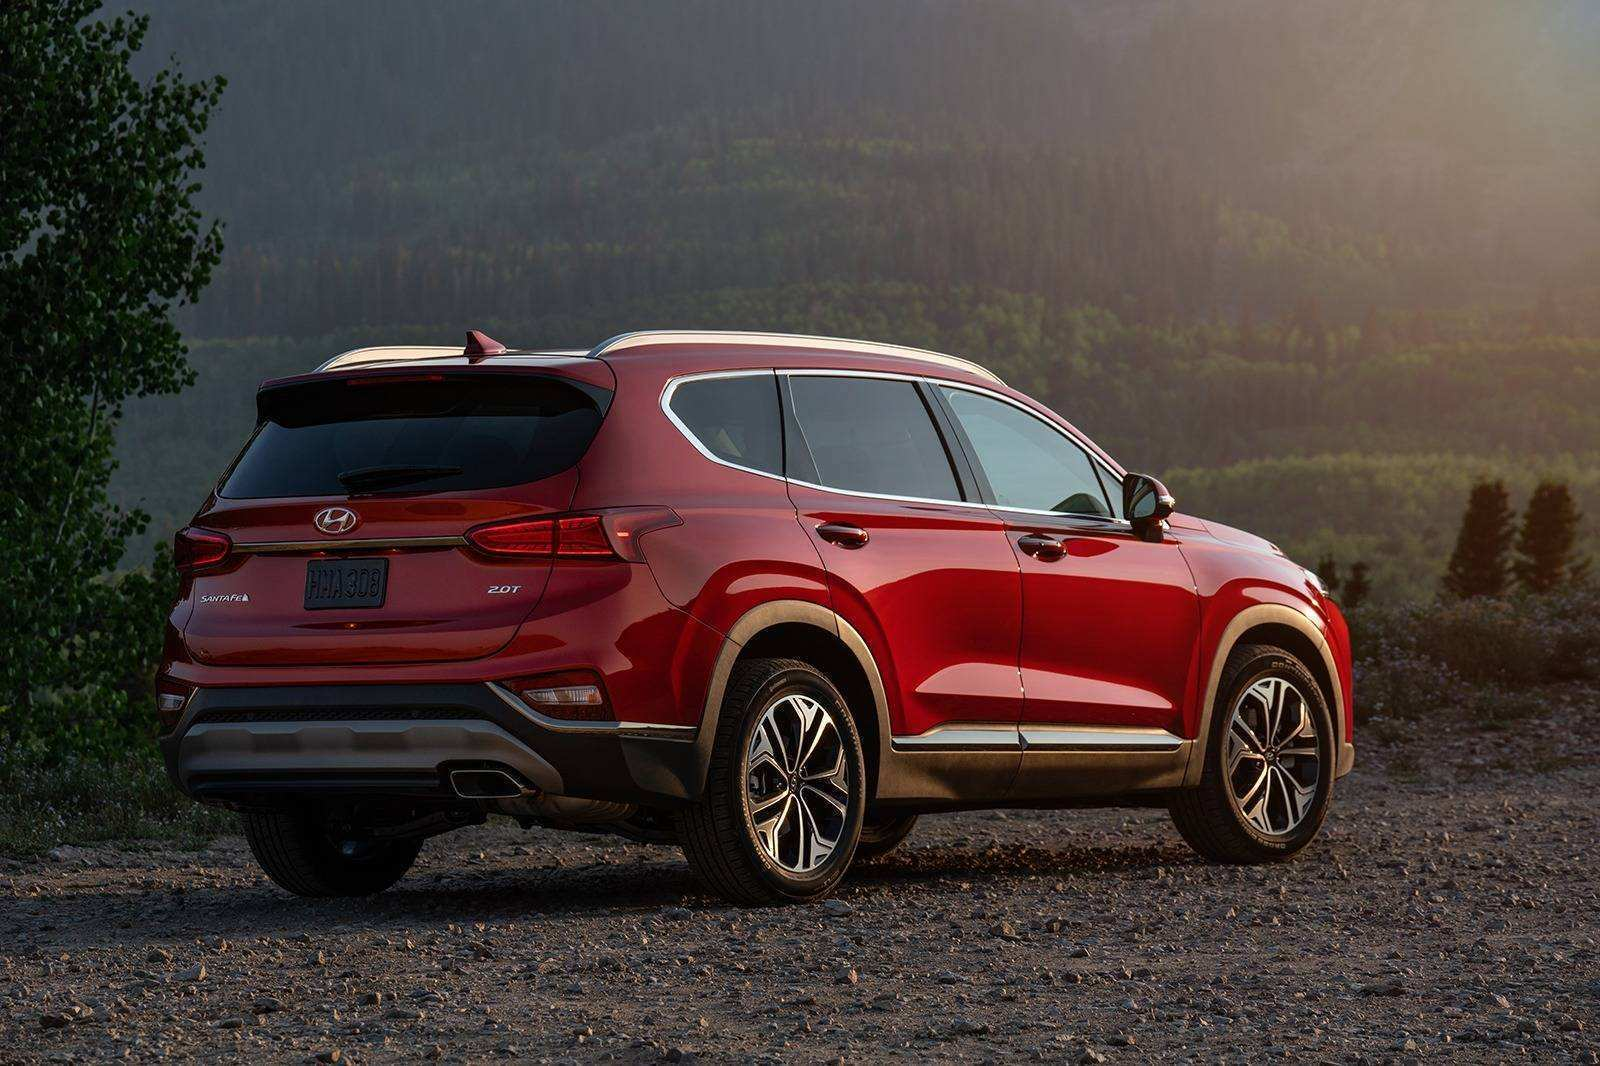 45 Great 2019 Hyundai Santa Fe Engine Spesification with 2019 Hyundai Santa Fe Engine